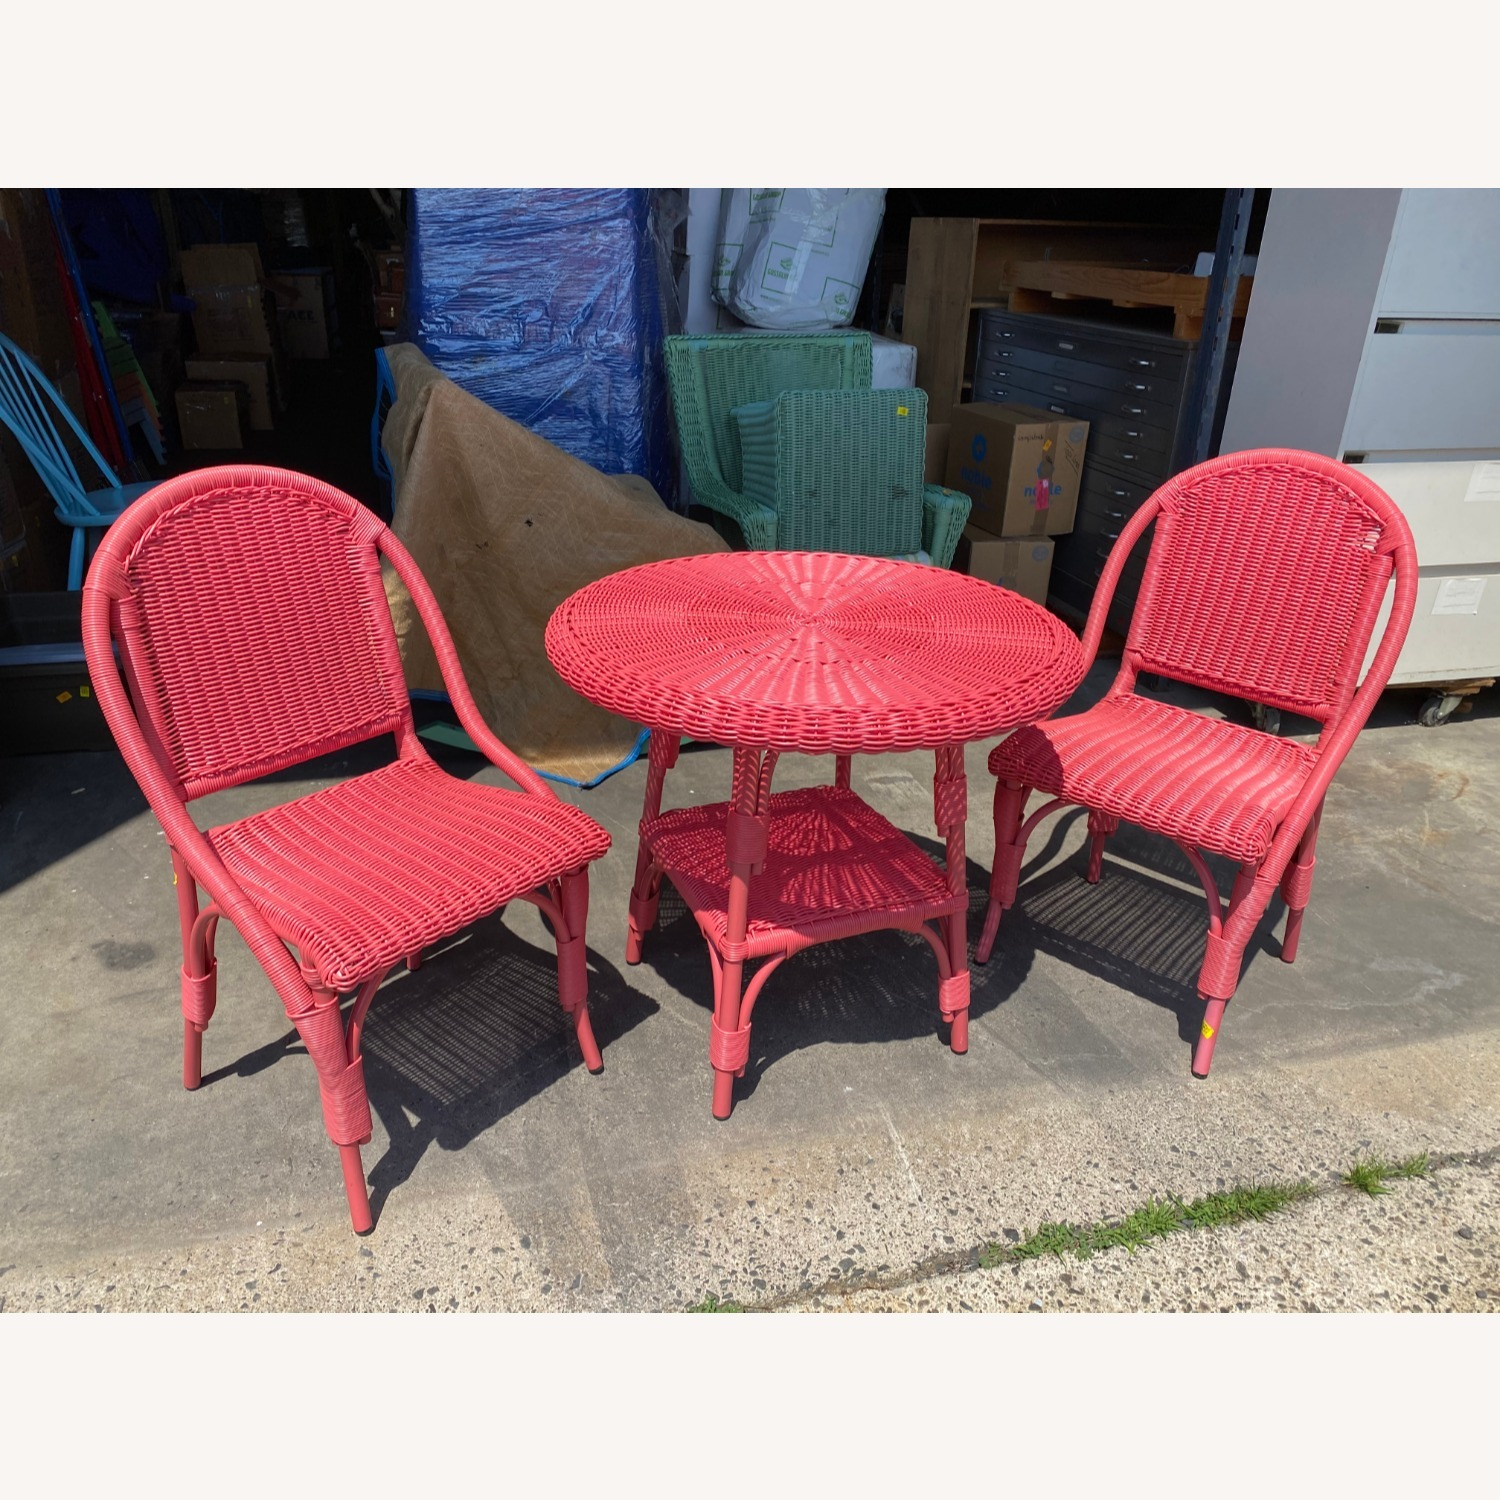 Two Maine Cottage Pink Outdoor Wicker Chairs - image-4